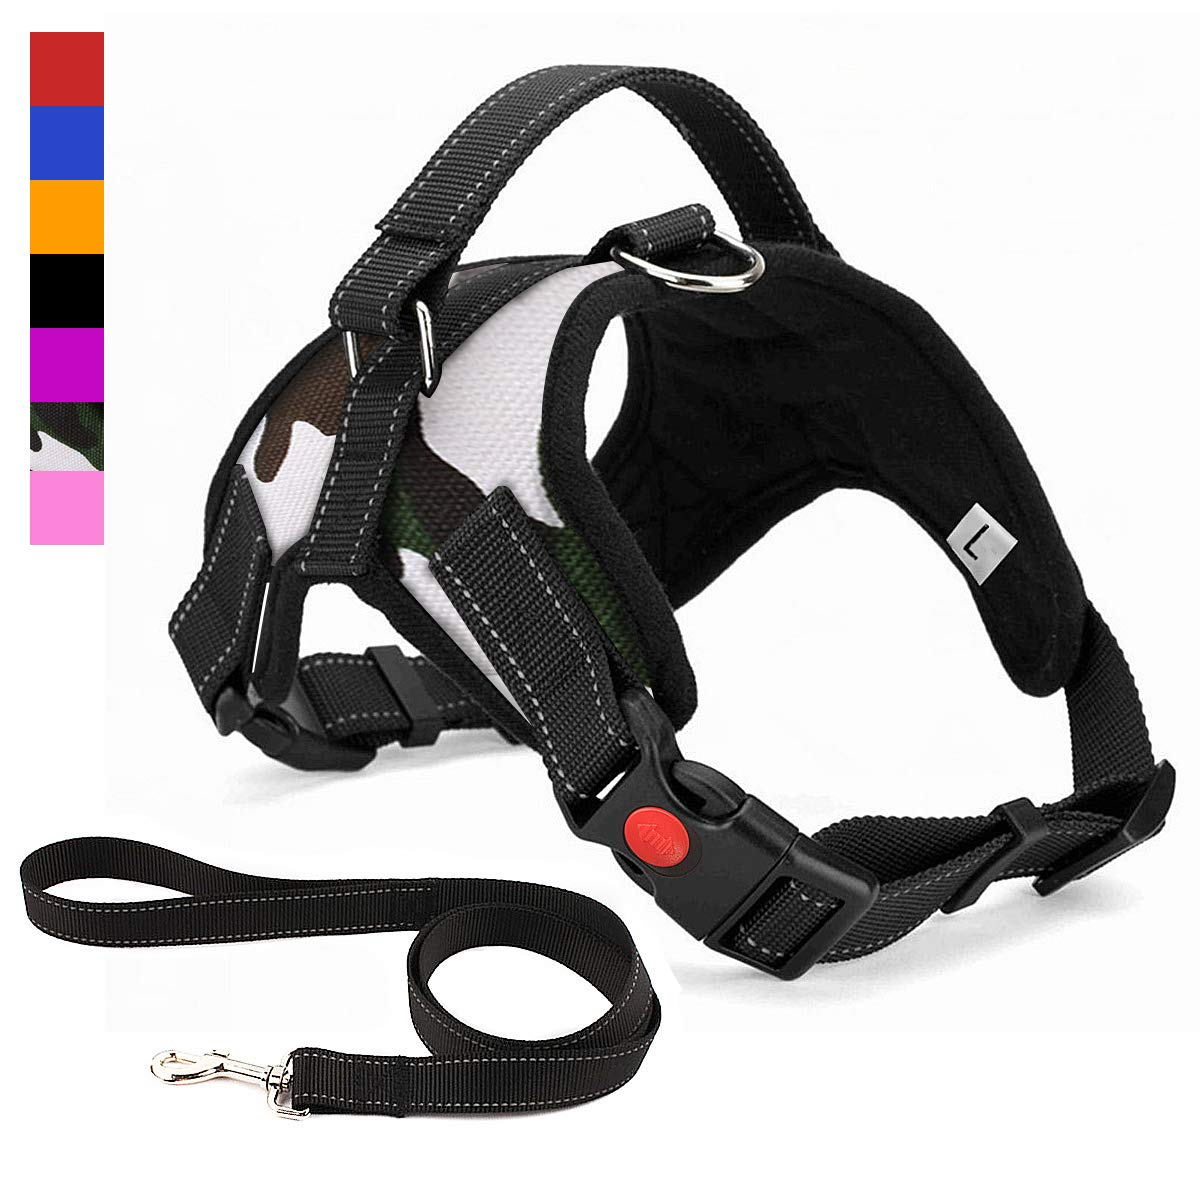 Musonic No Pull Dog Harness, Breathable Adjustable Comfort, Free Leash Included, for Small Medium Large Dog, Best for Training Walking